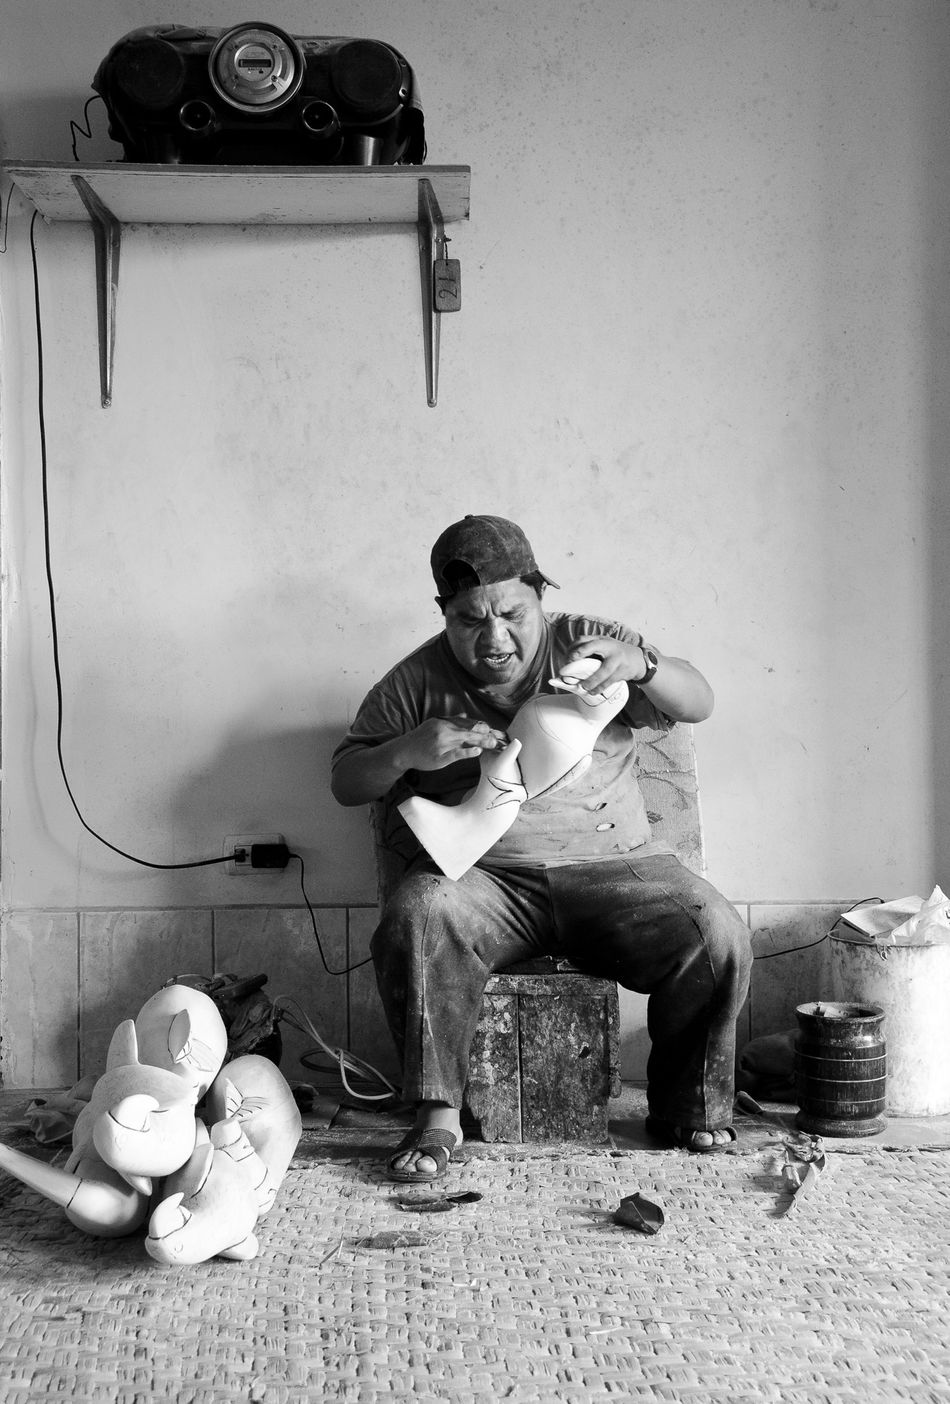 This man was singing loud by making a wooden parrot- wonderful to watch :) People People Photography Showcase: February Black & White Blackandwhite Photography Black And White Black&white Blackandwhite Singing Radio People Singing Wood Art Wood Working Man Parrot Telling Stories Differently Human Meets Technology The Portraitist - 2016 EyeEm Awards